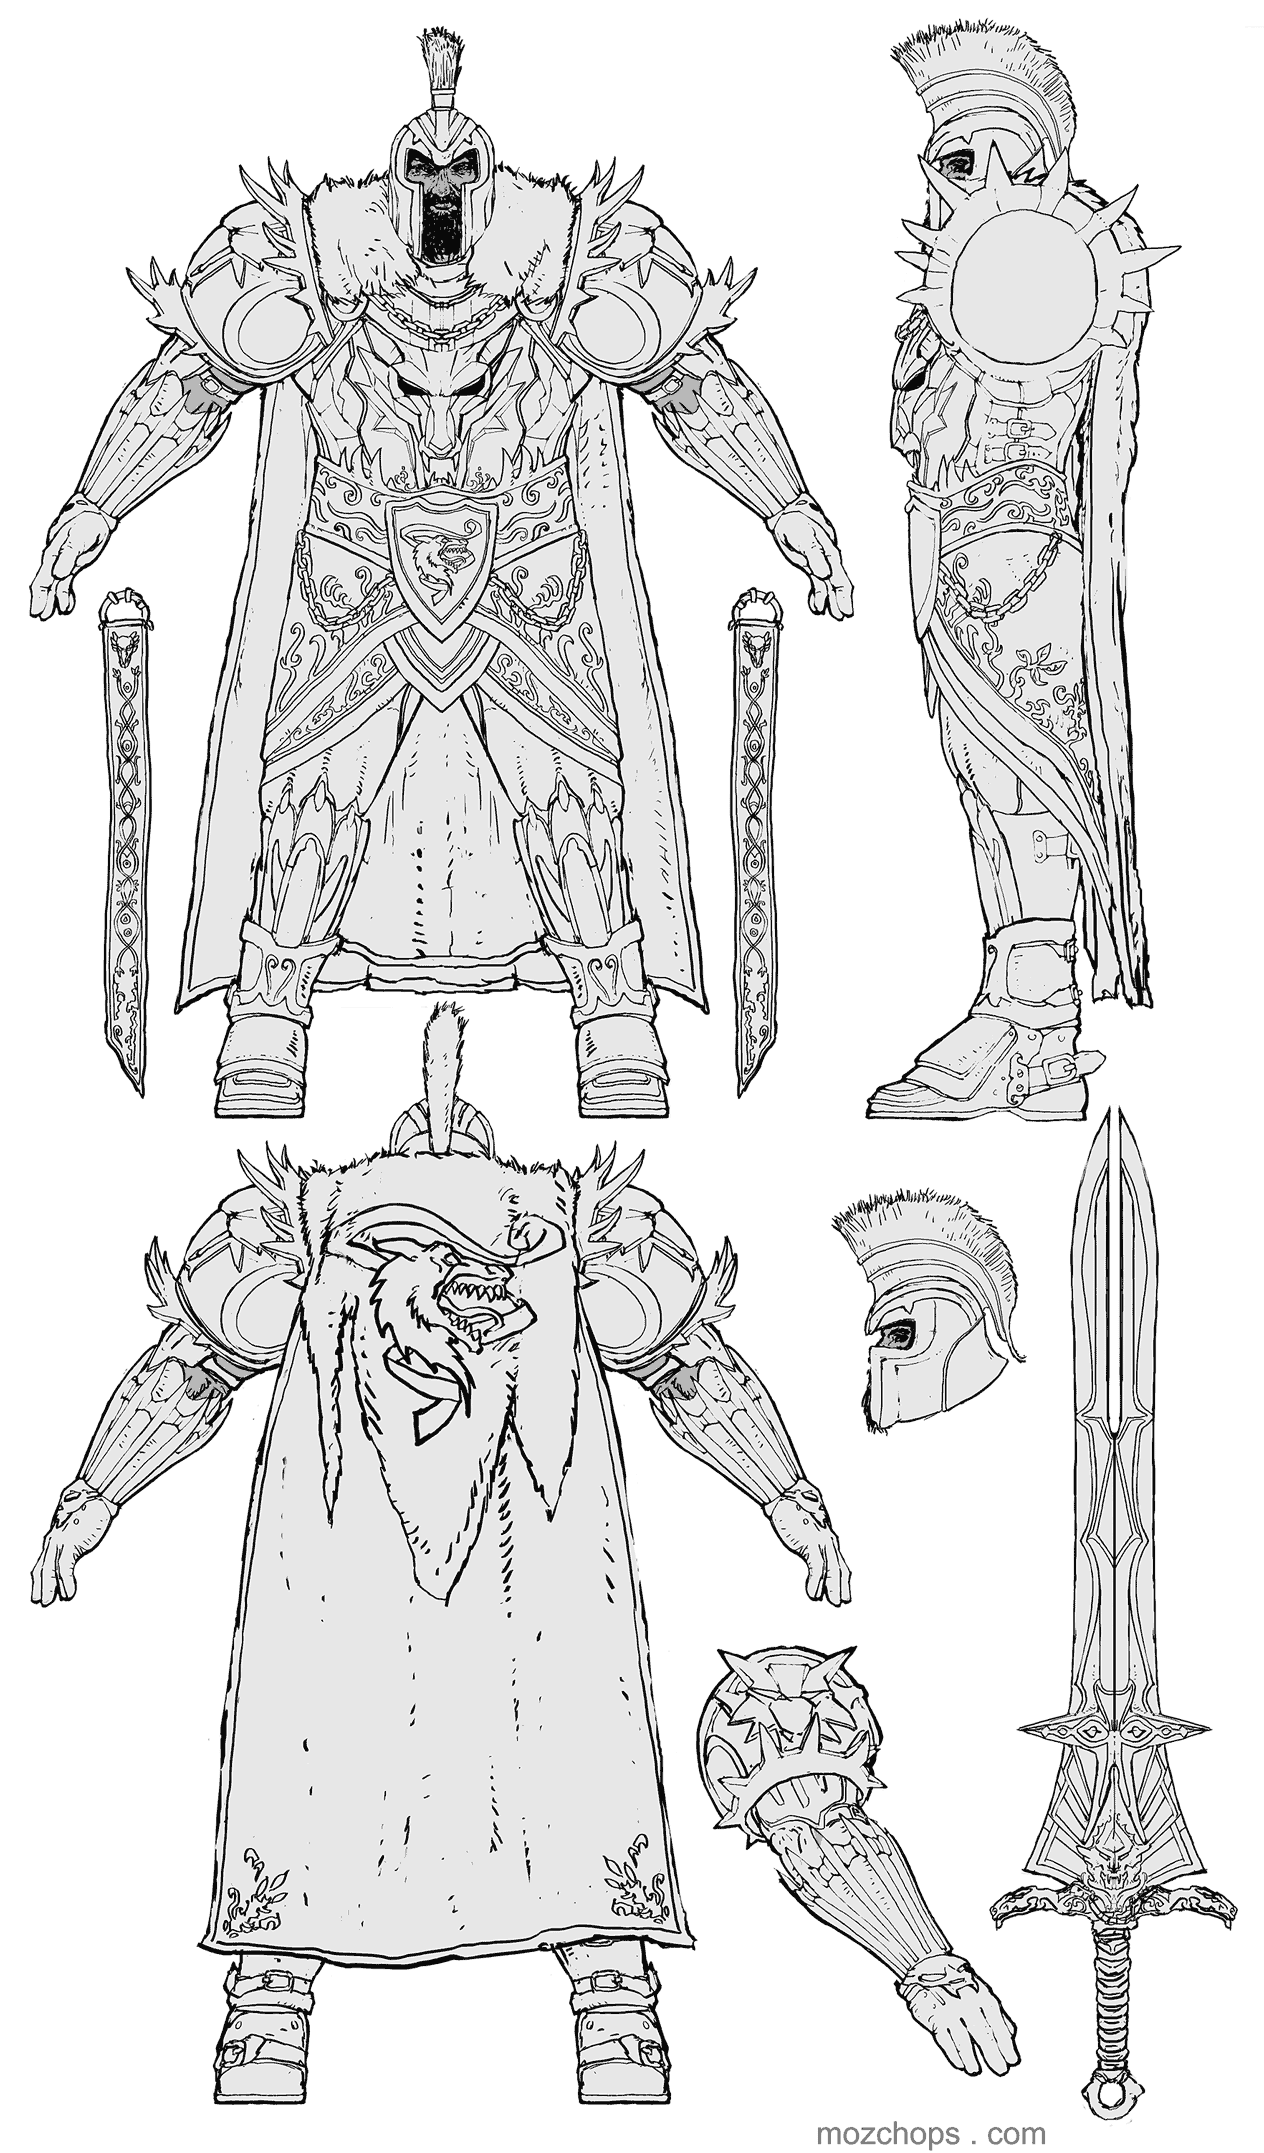 swordmaster-tpose-orthographic-by-mozchops